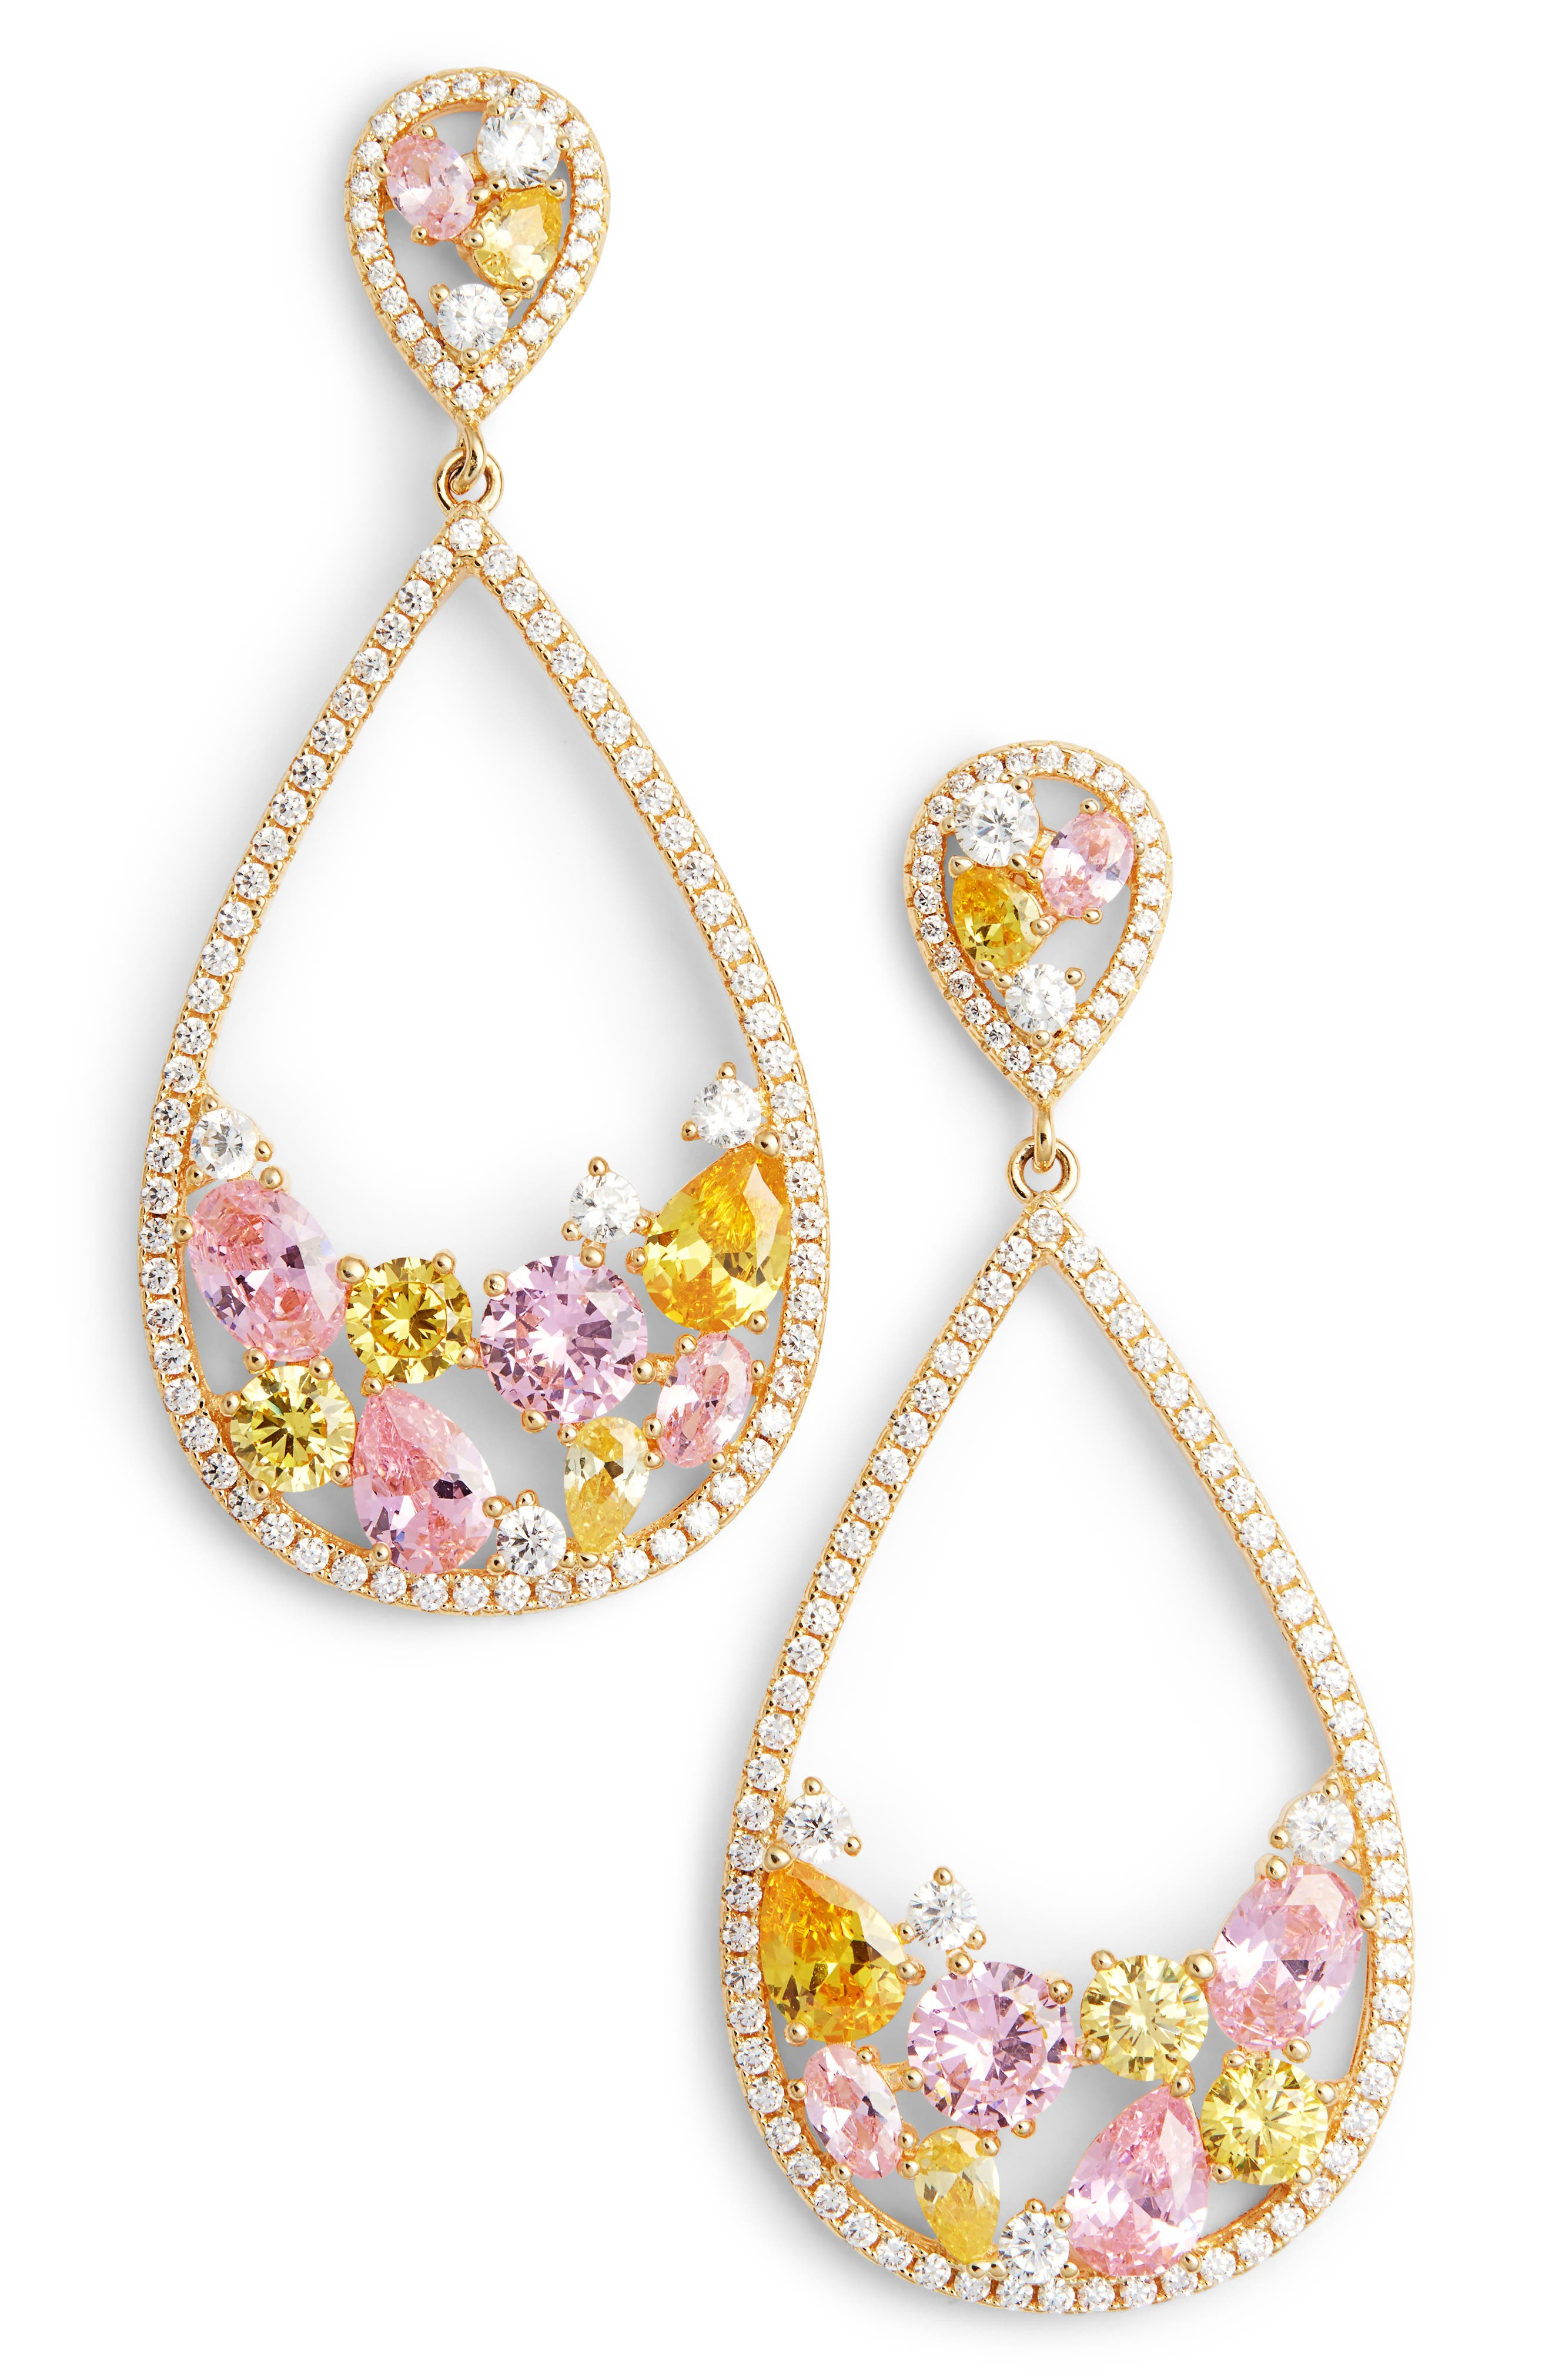 Stone Cluster Open Teardrop Earrings,                         Main,                         color, Gold/ Pink/ Yellow/ White Cz